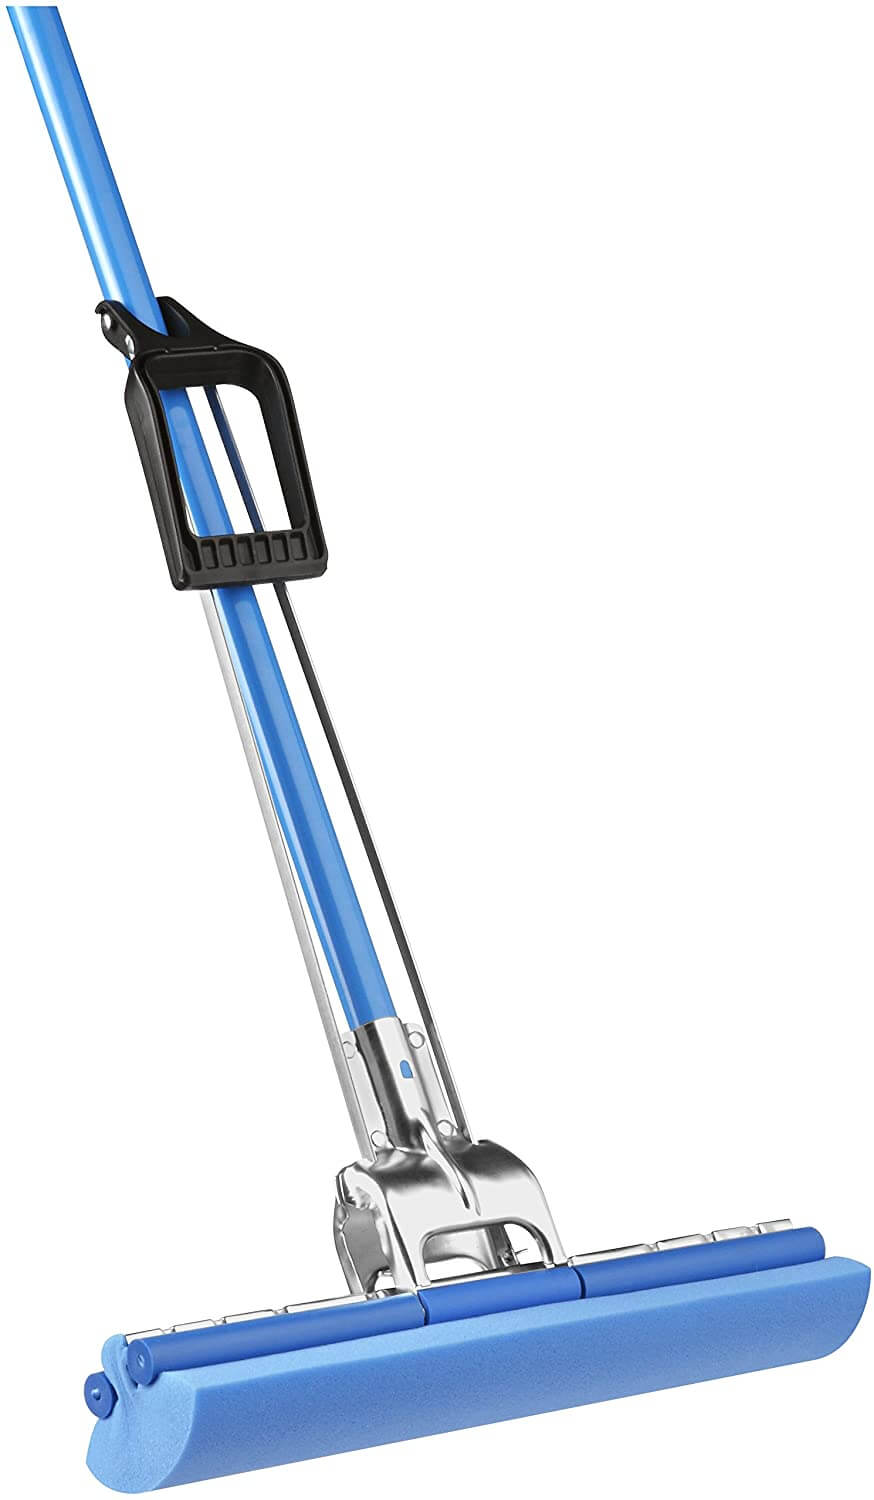 Vileda Industrial Janitor Roll-O-Matic Sponge Mop for Commercial Use